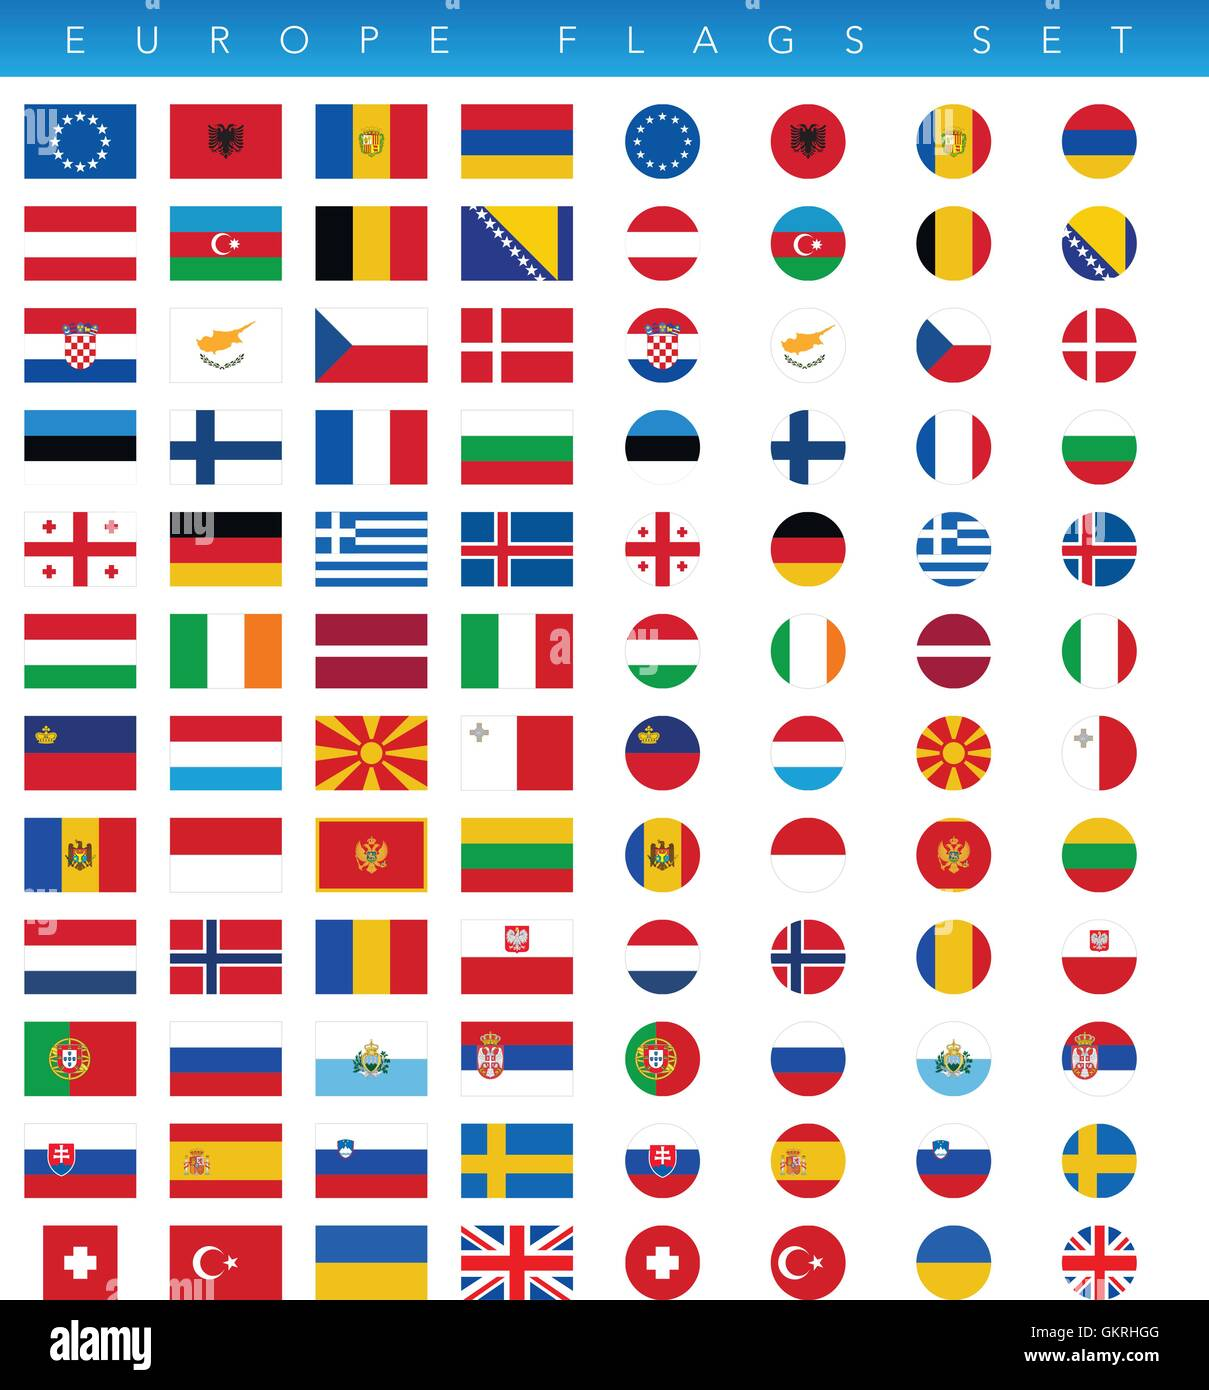 High Resolution Flags Stock Photos Amp High Resolution Flags